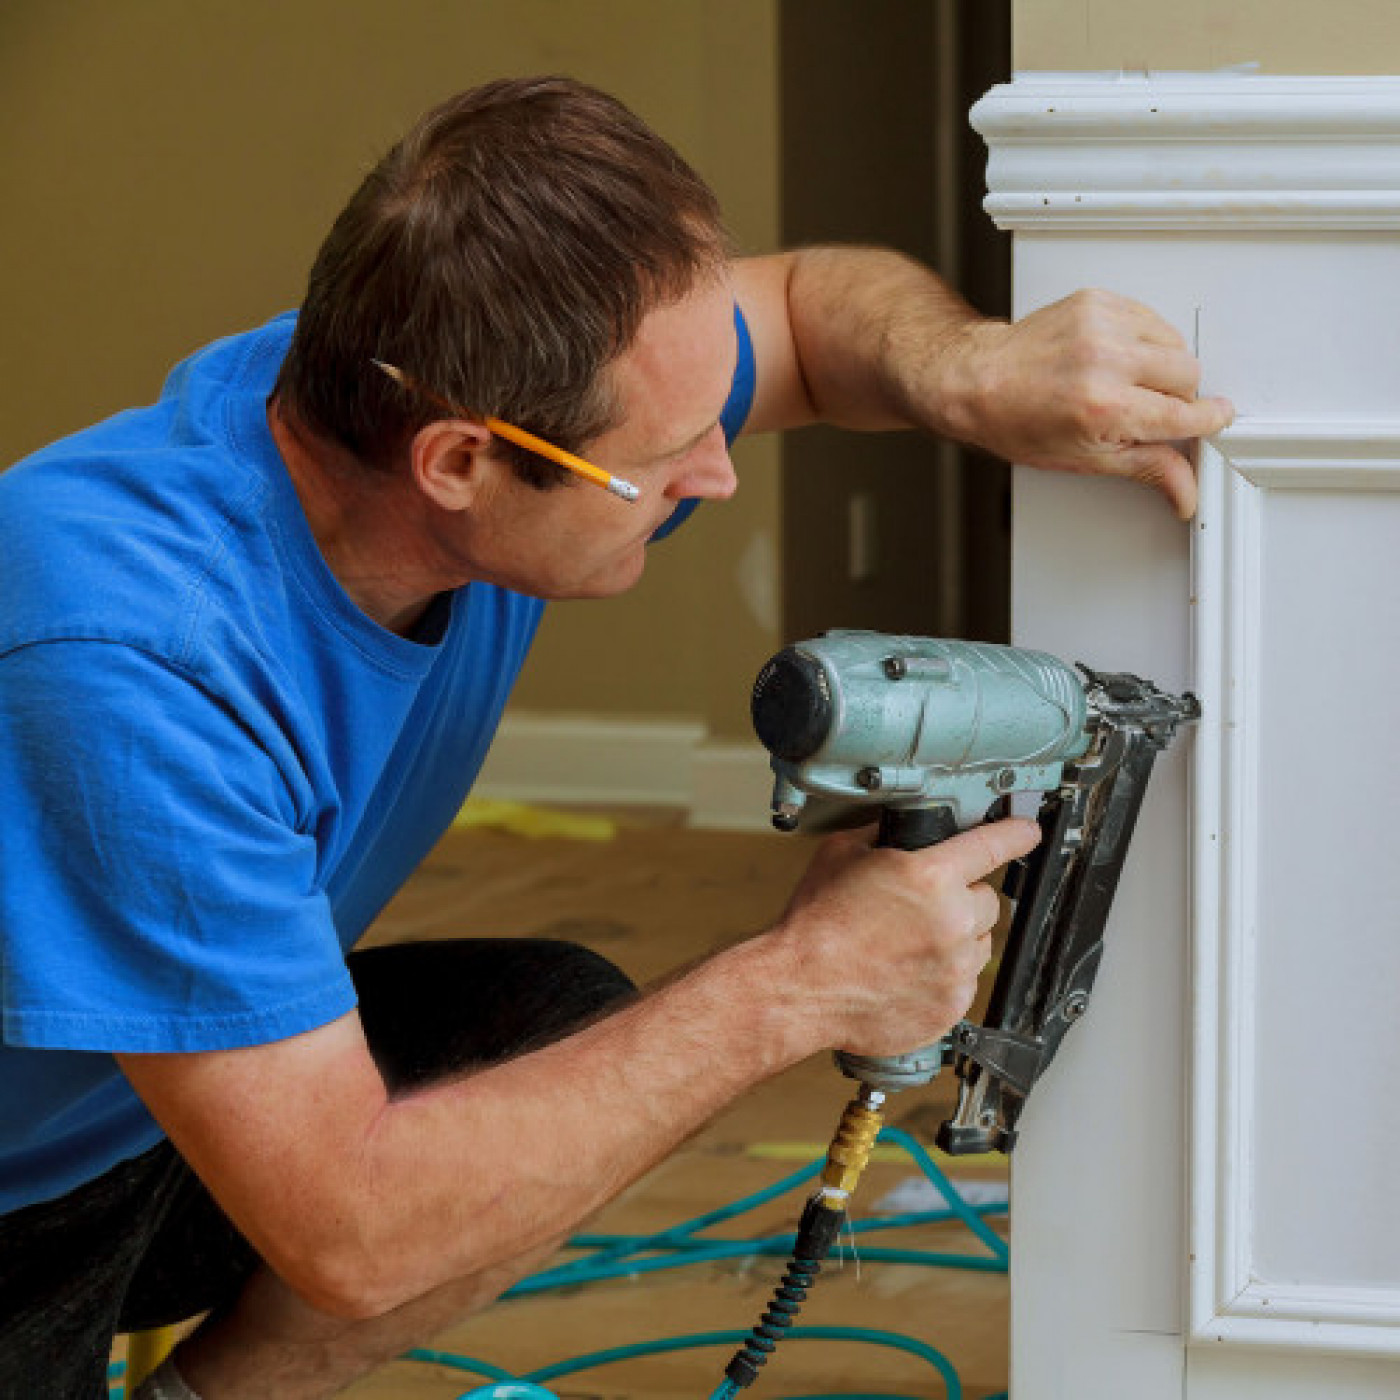 9 Questions to Ask Before You Hire a Handyman